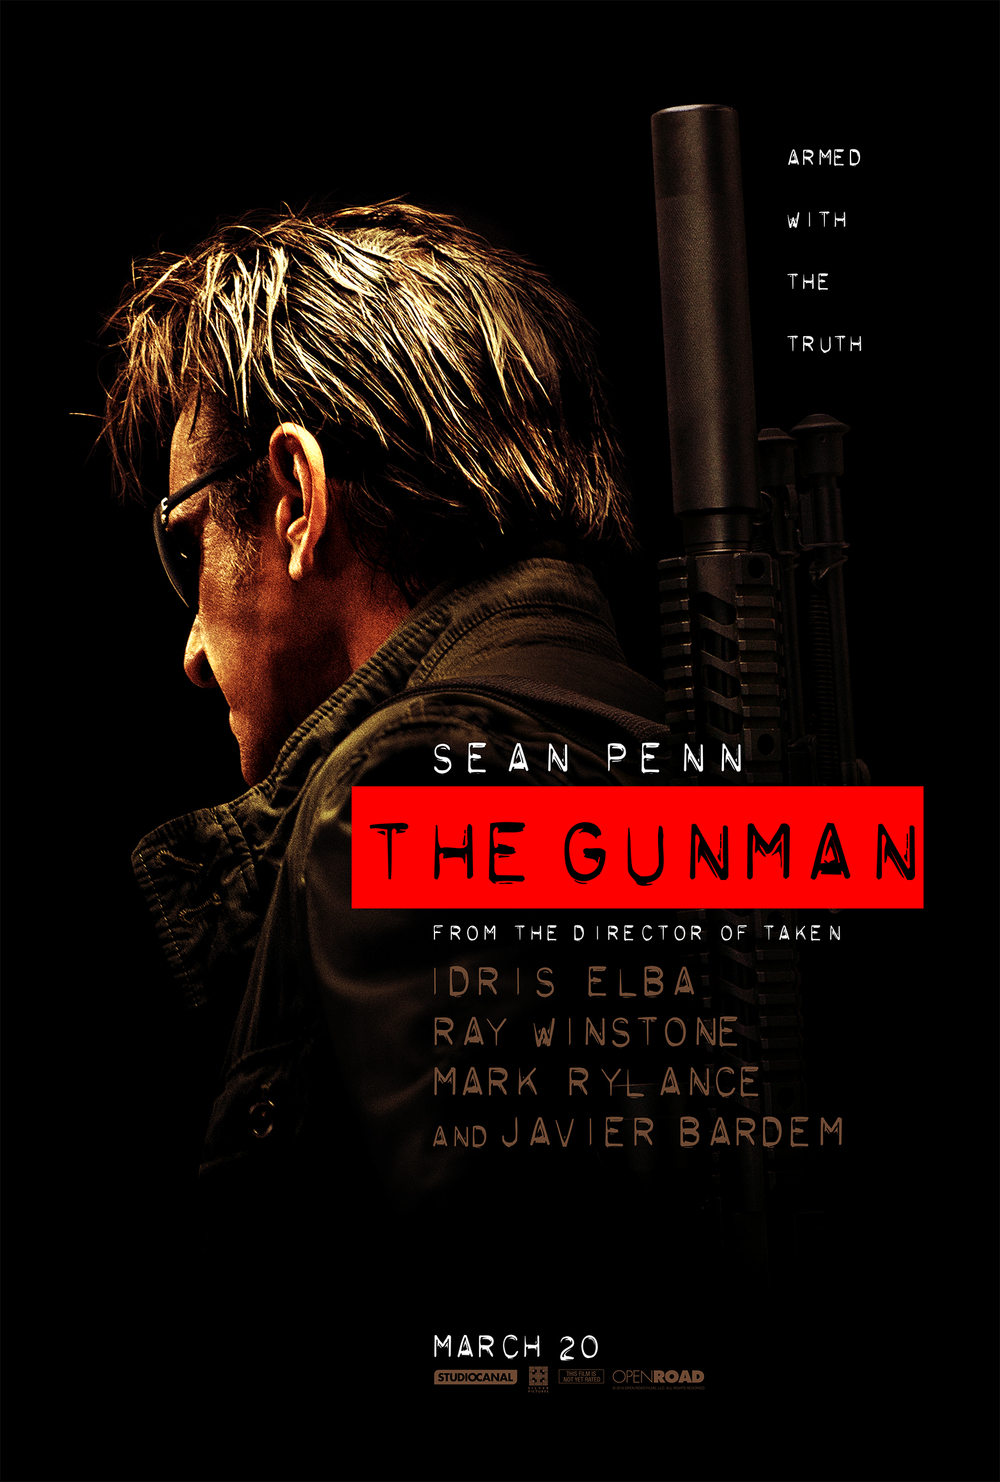 Watch The Gunman trailer  here .